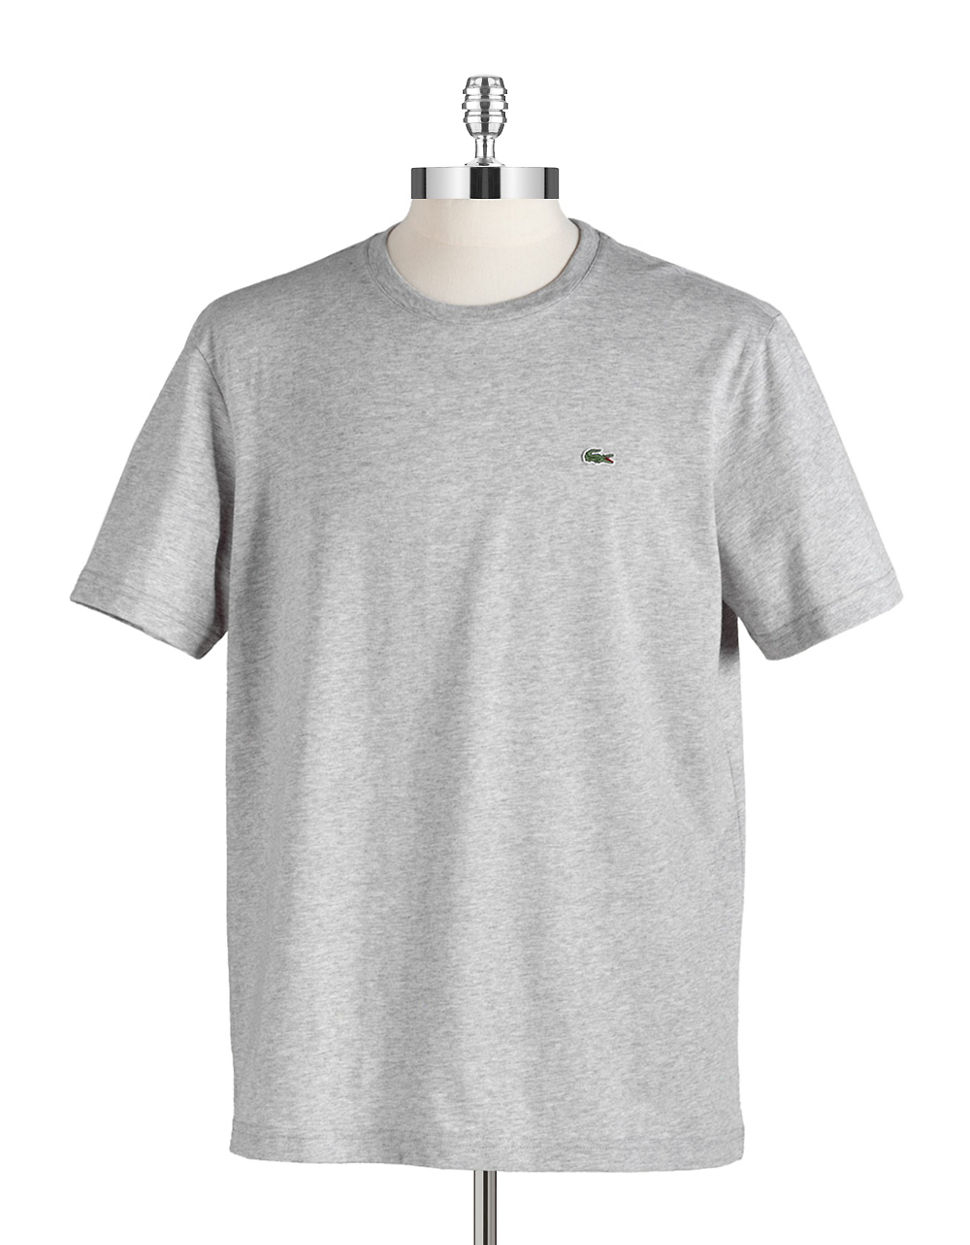 Lacoste Pima Cotton T Shirt In Gray For Men Grey Lyst